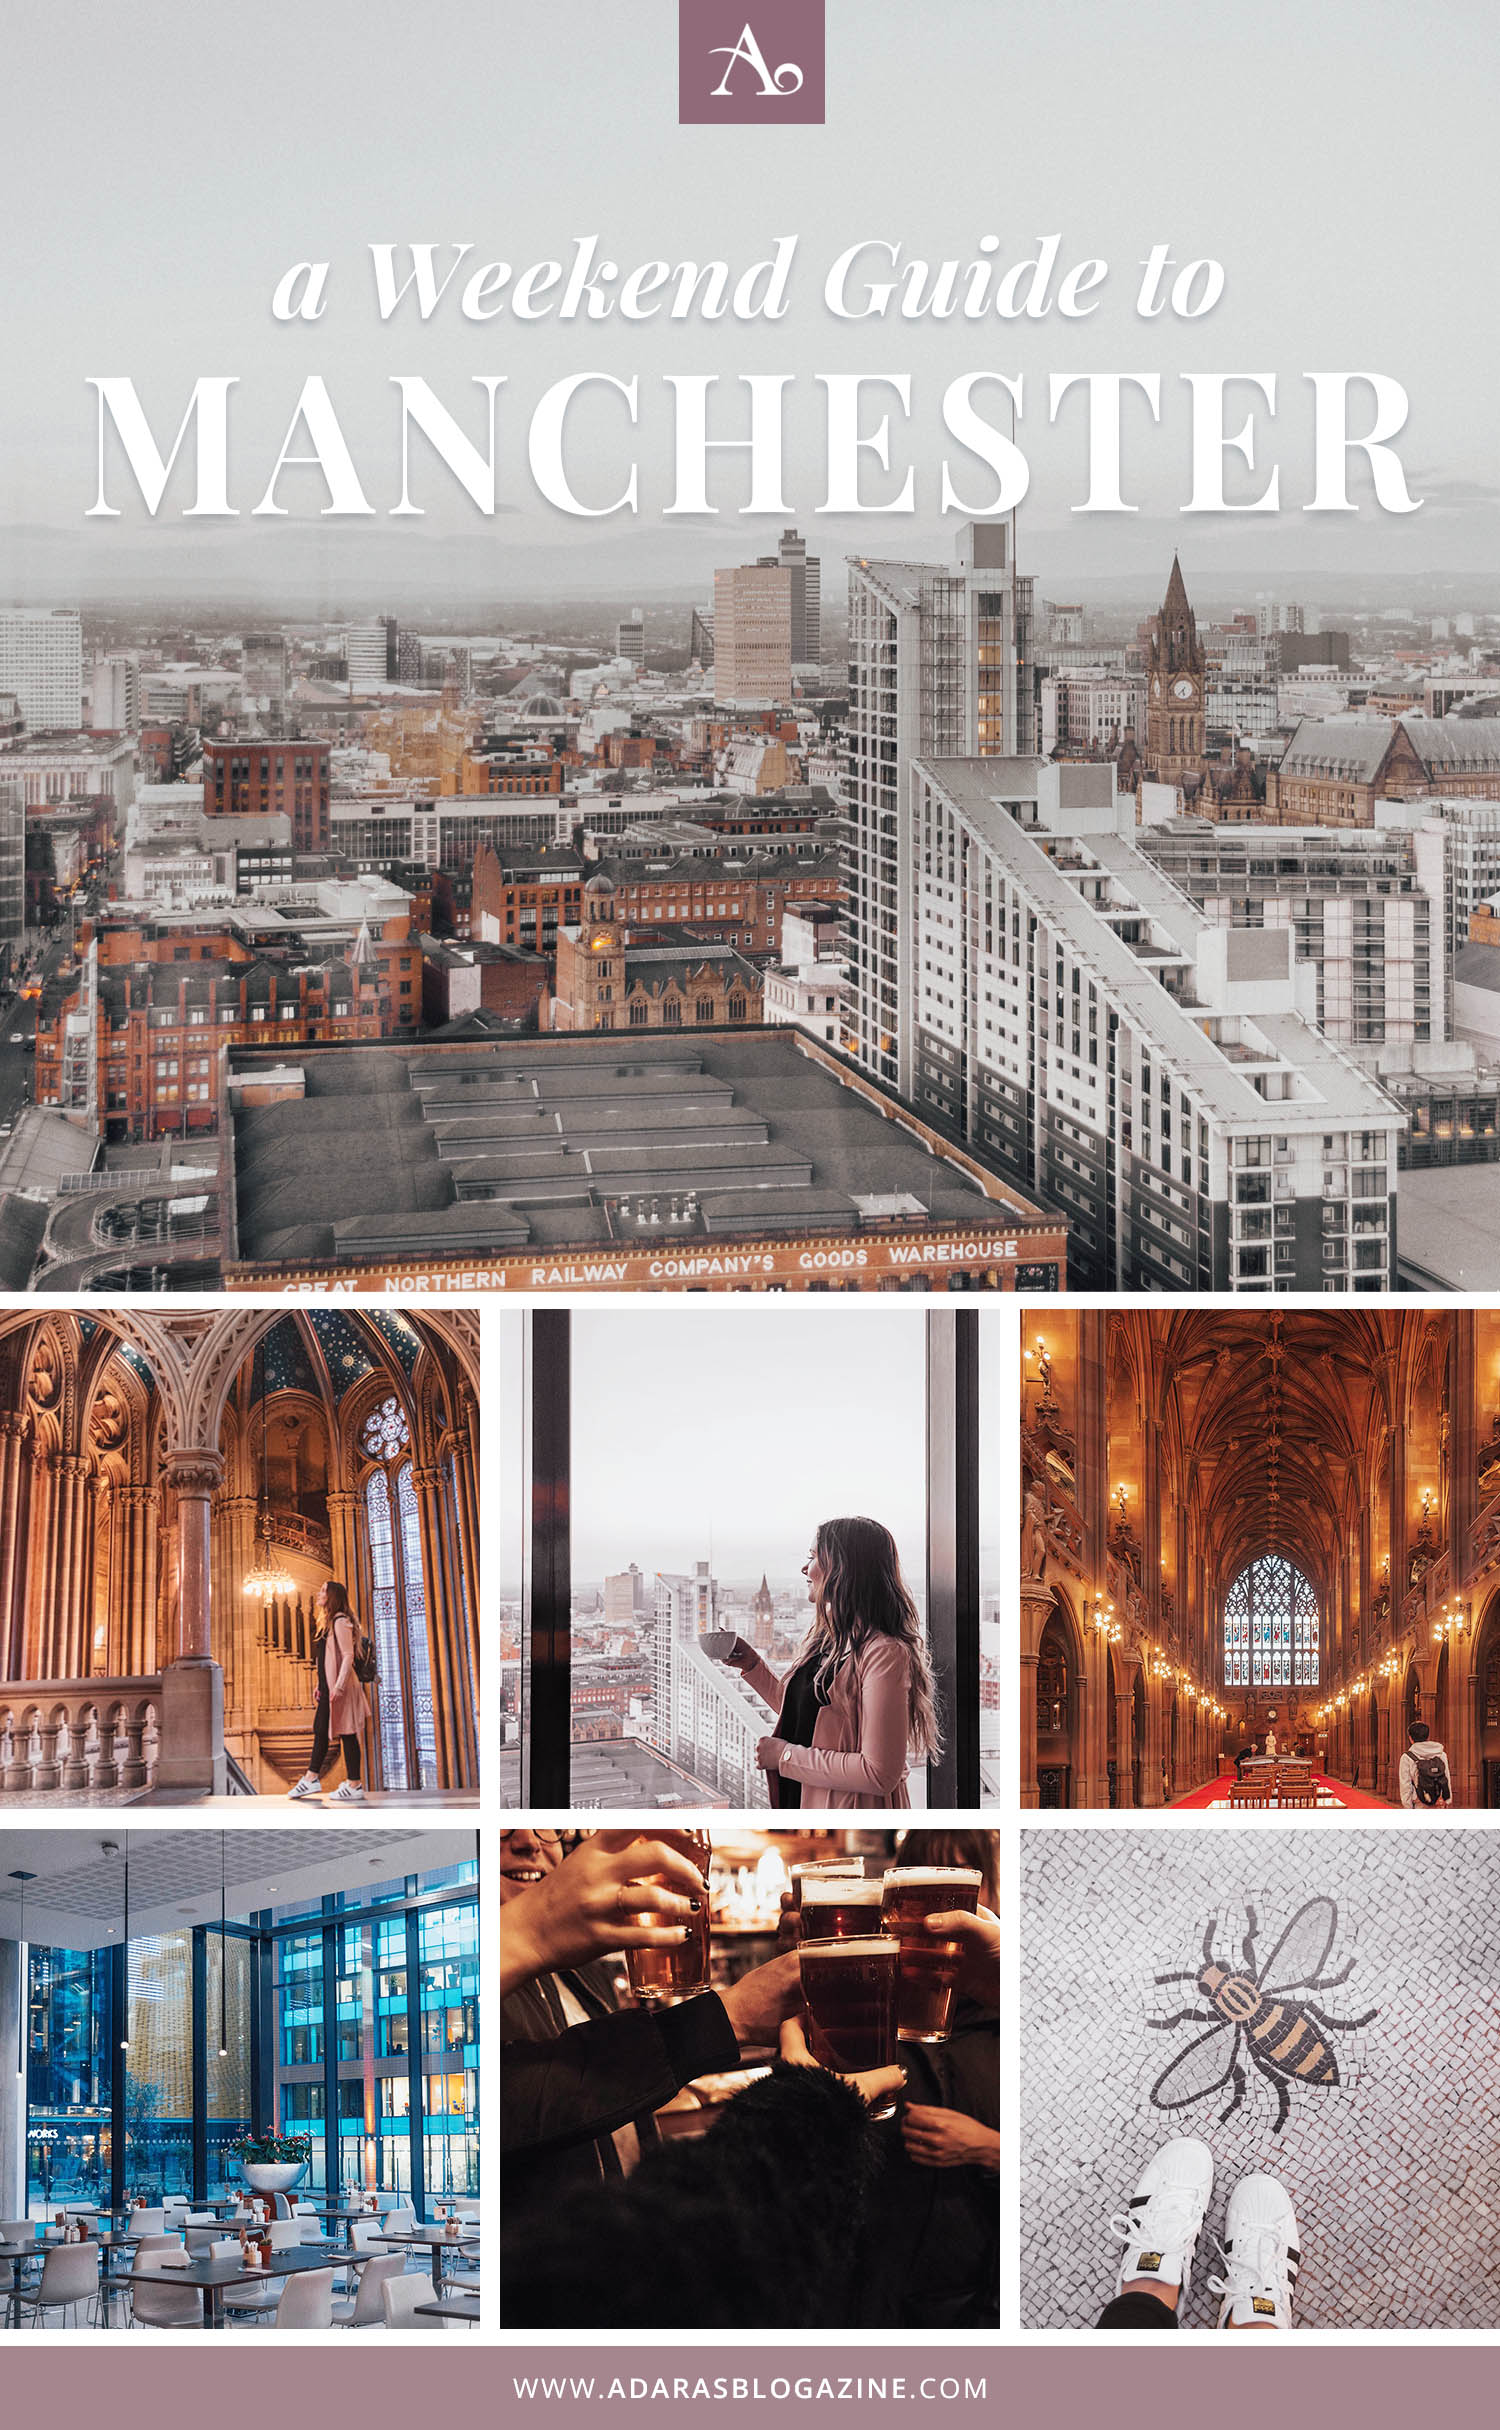 How to spend a weekend in Manchester, England - Adaras Travel Guide